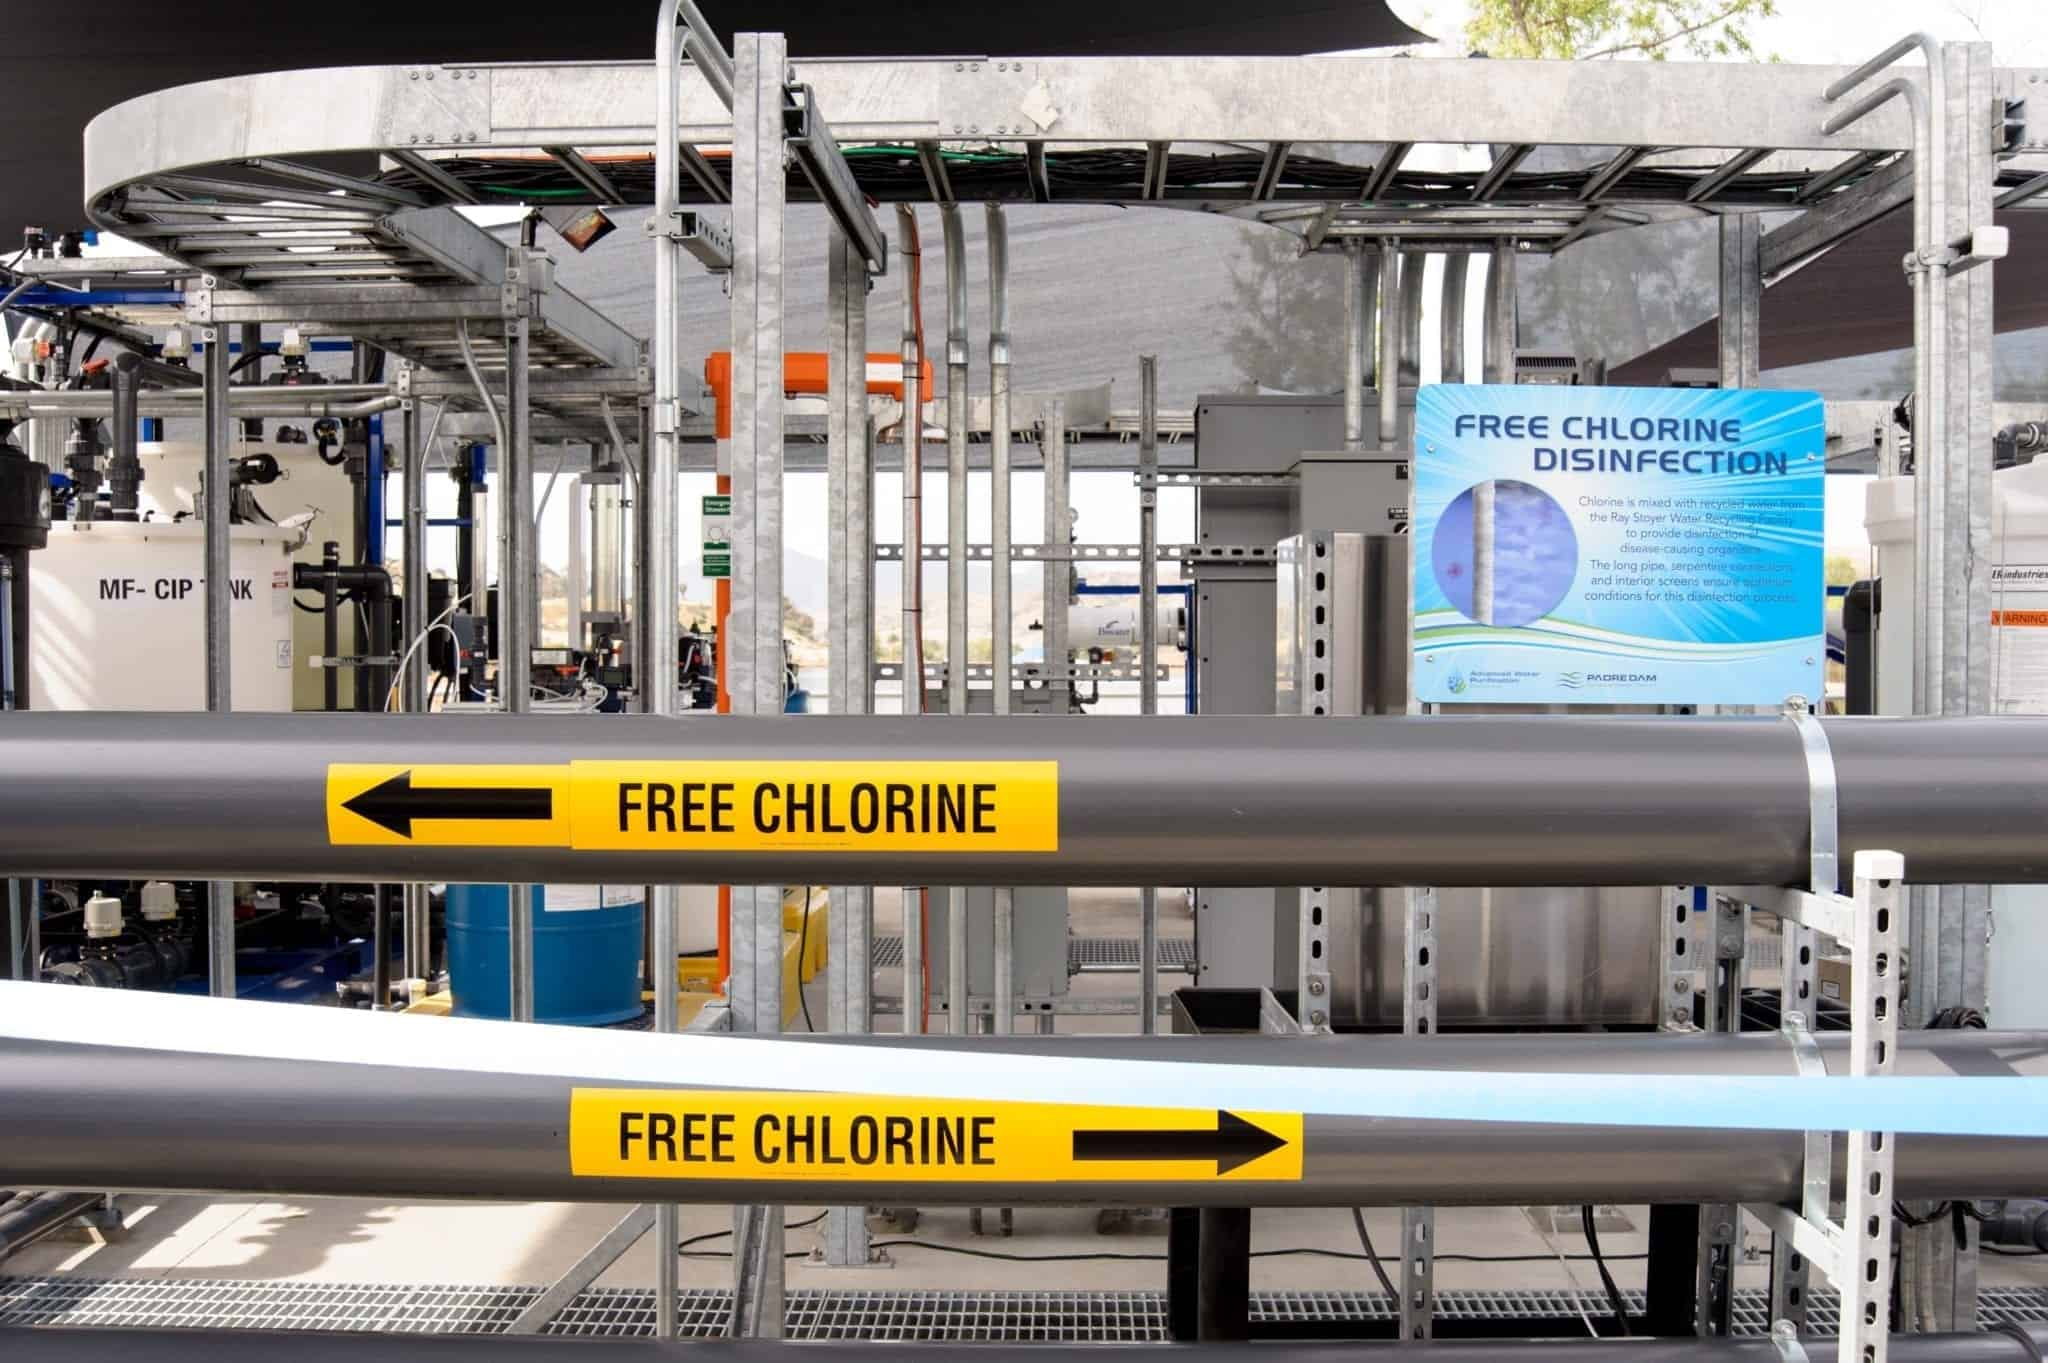 Free Chlorine Disinfection